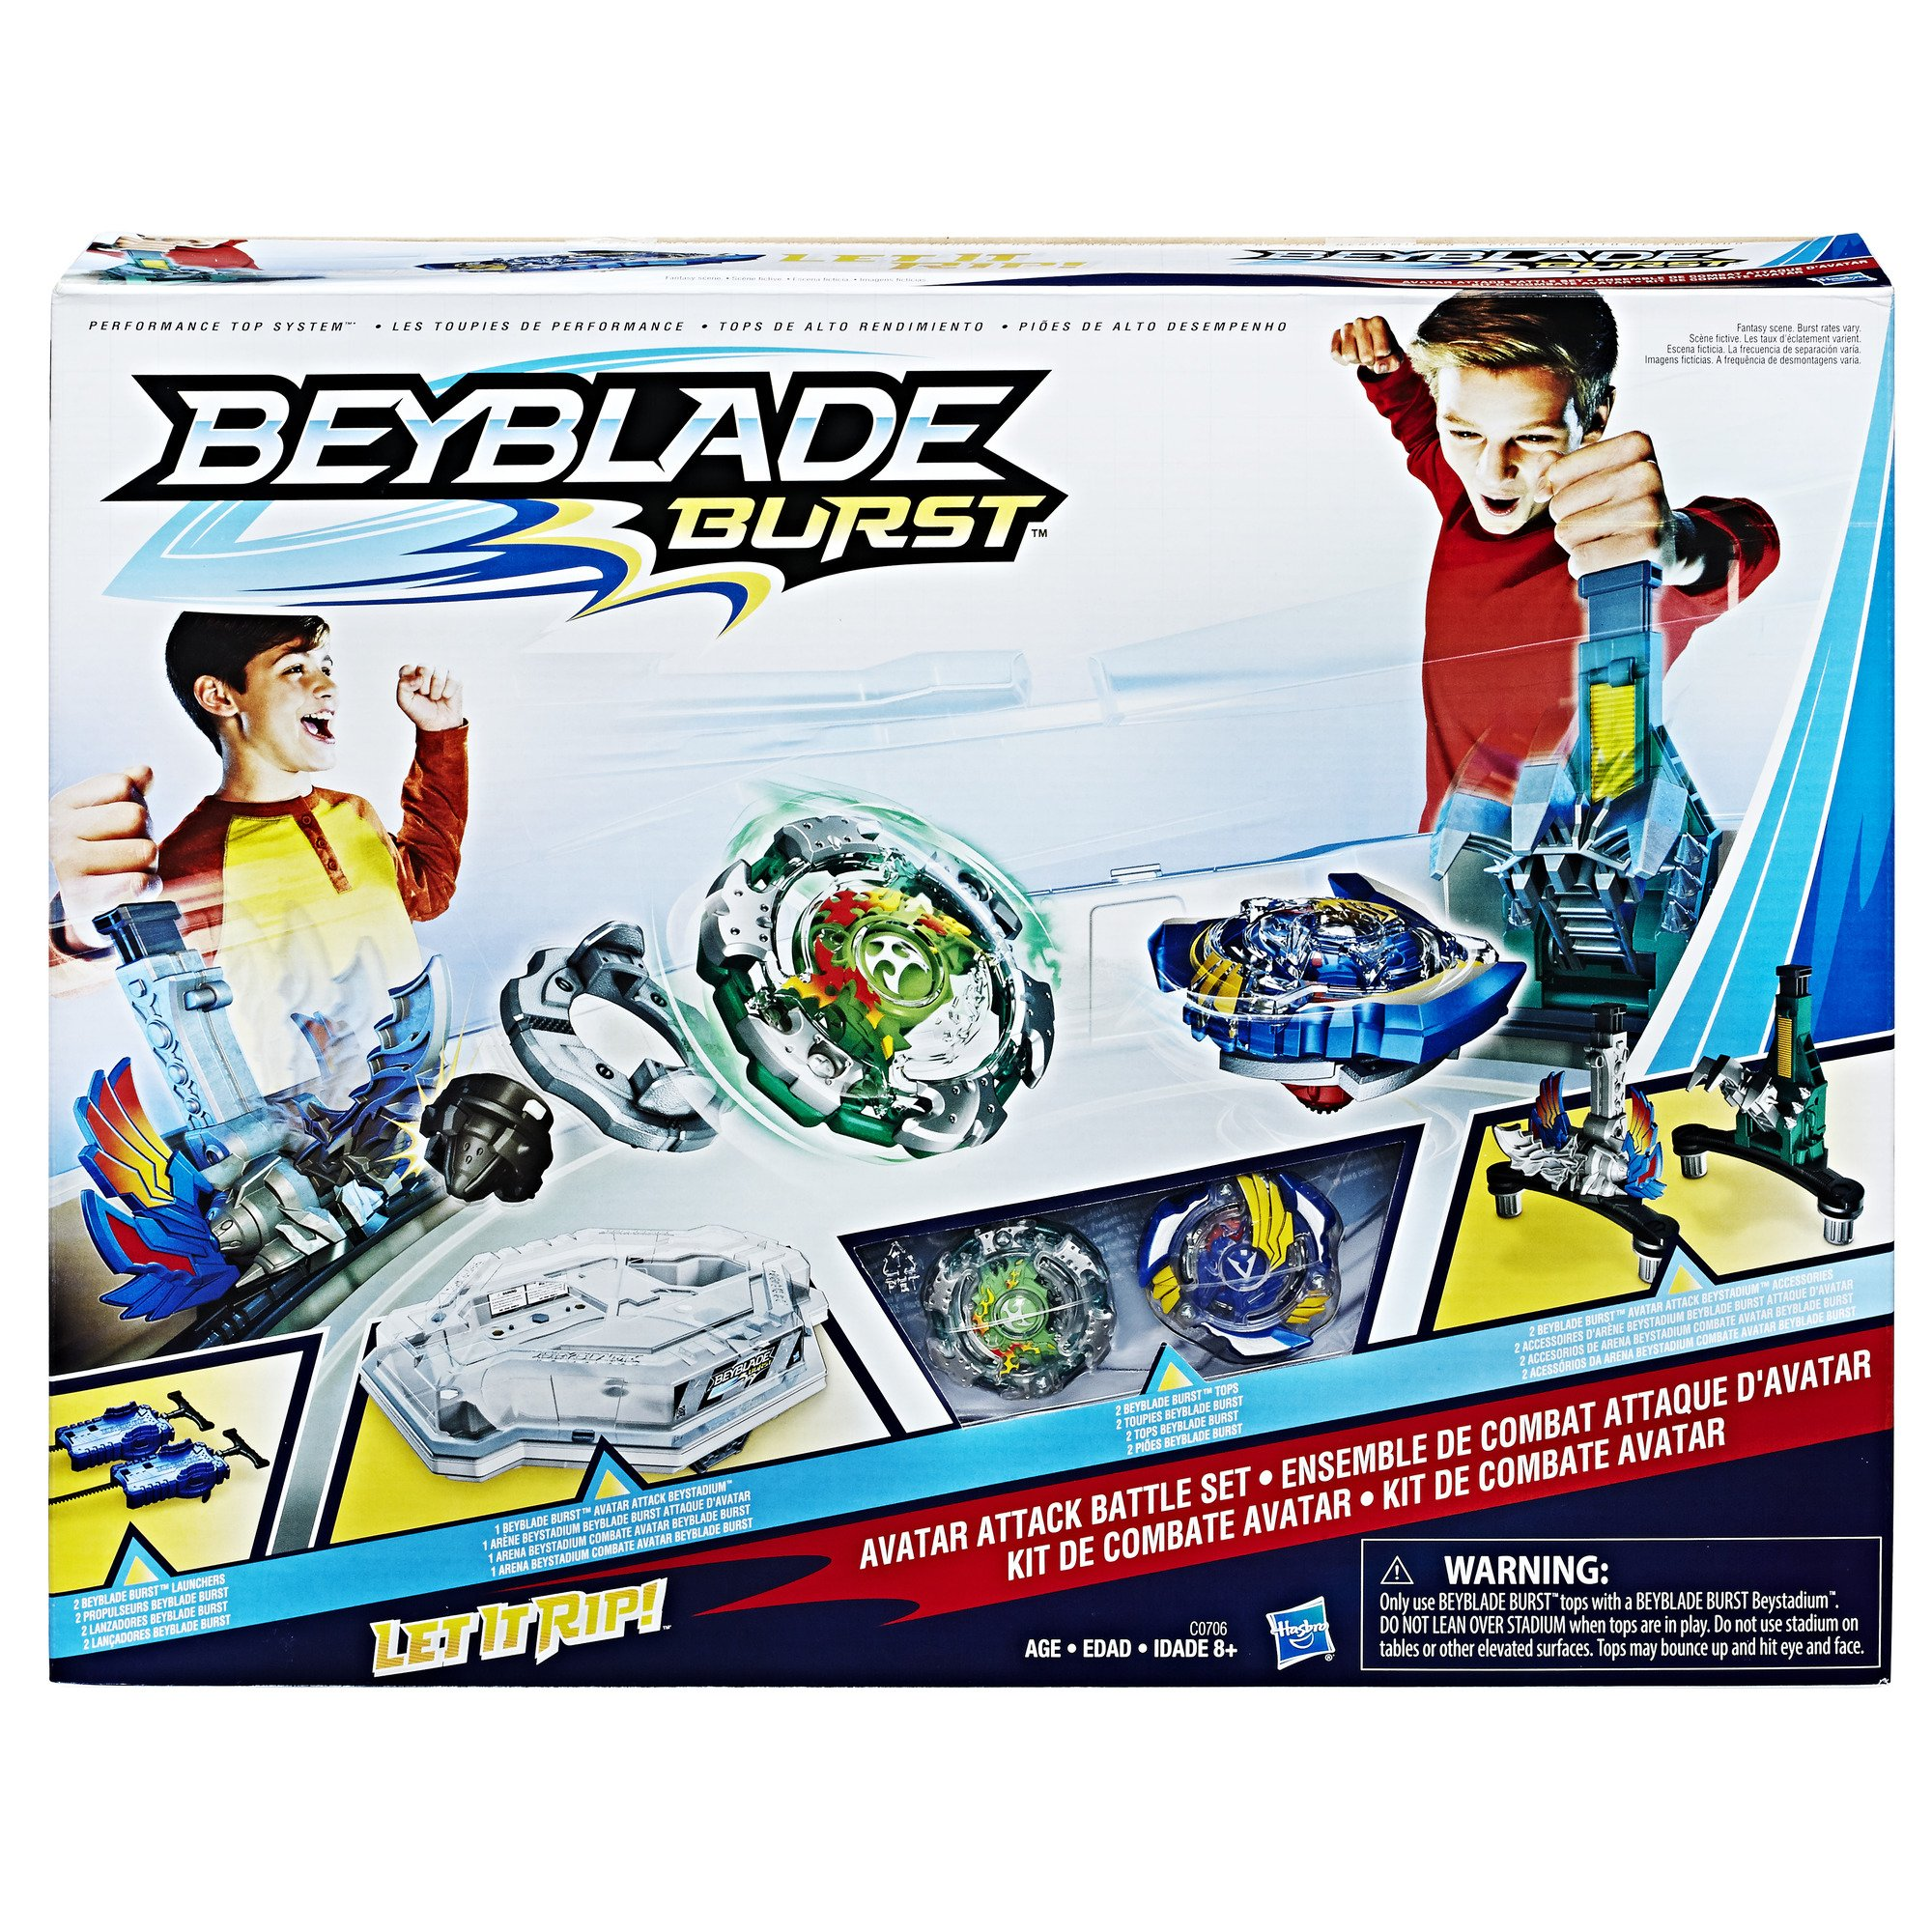 BEYBLADE Burst Avatar Attack Battle Set (Amazon Exclusive) by BEYBLADE (Image #1)